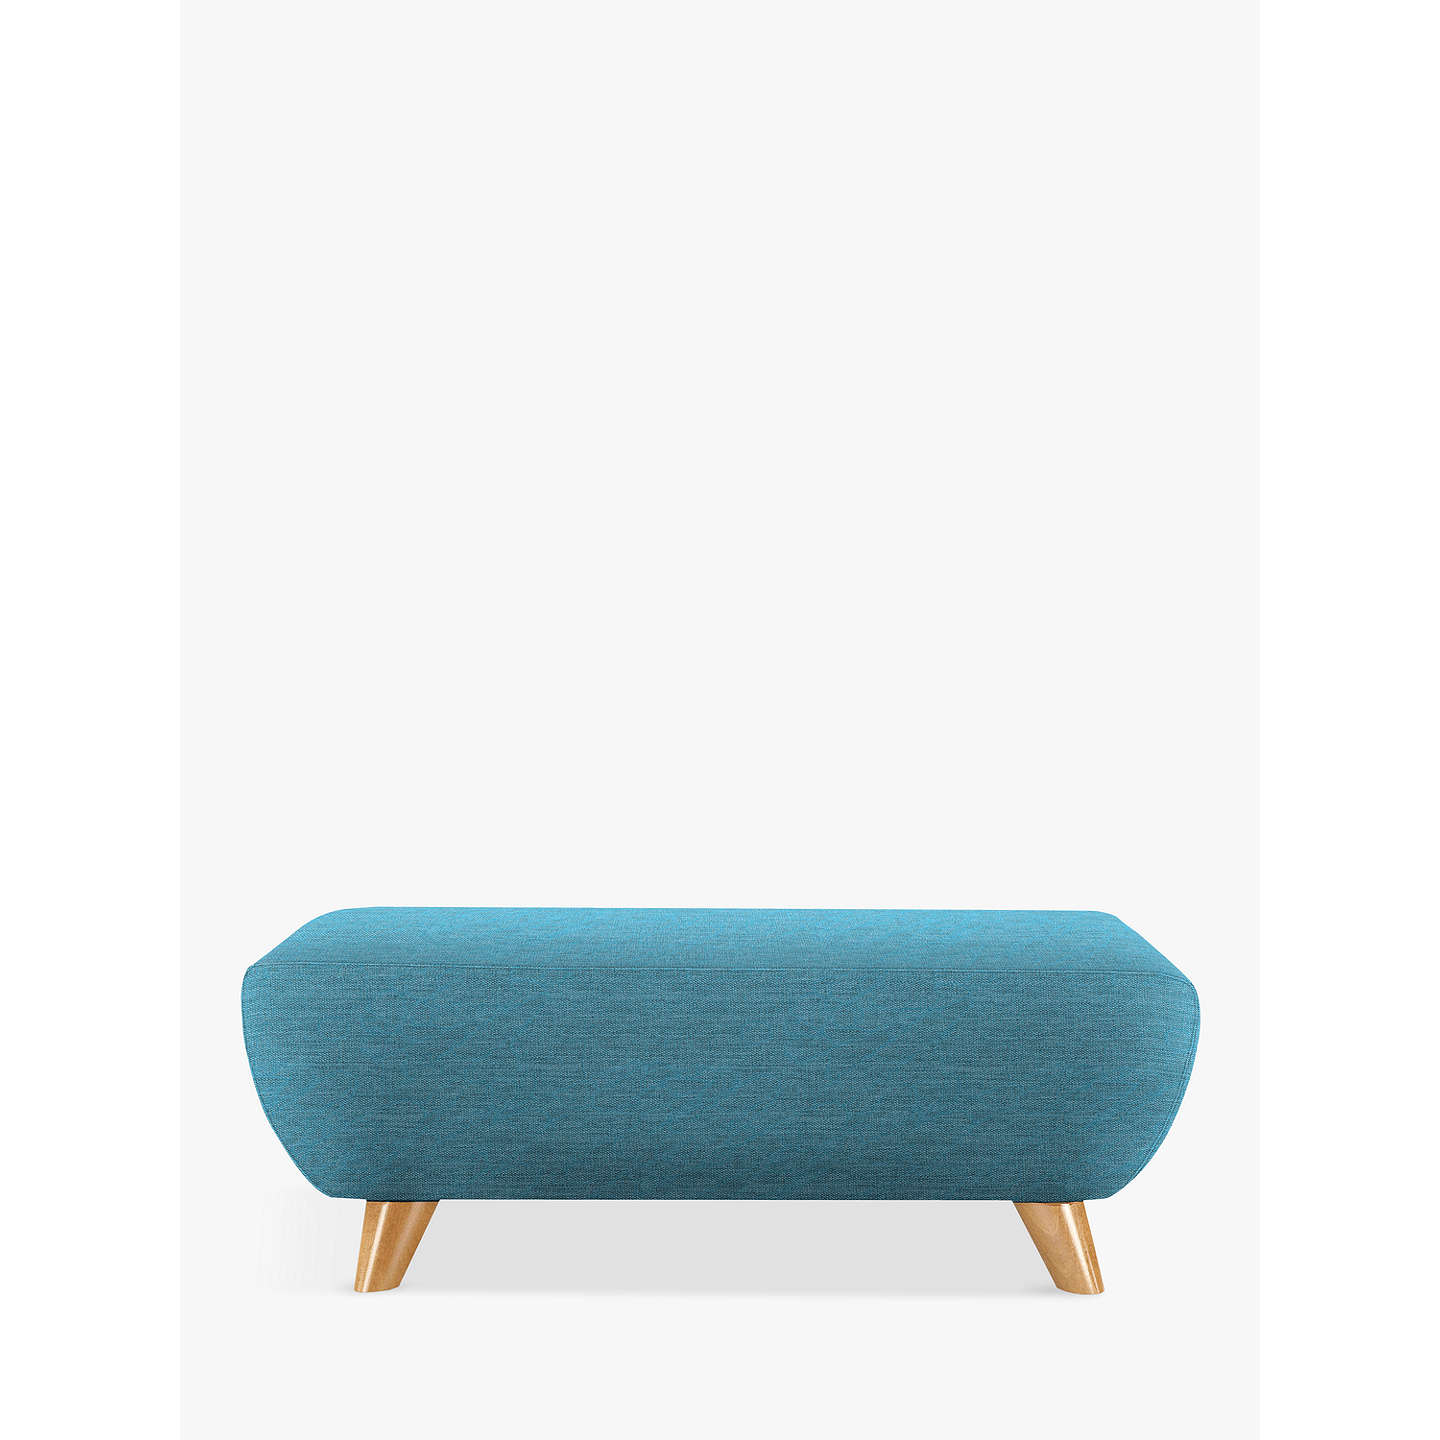 BuyG Plan Vintage The Sixty Seven Footstool, Fleck Blue Online at johnlewis.com